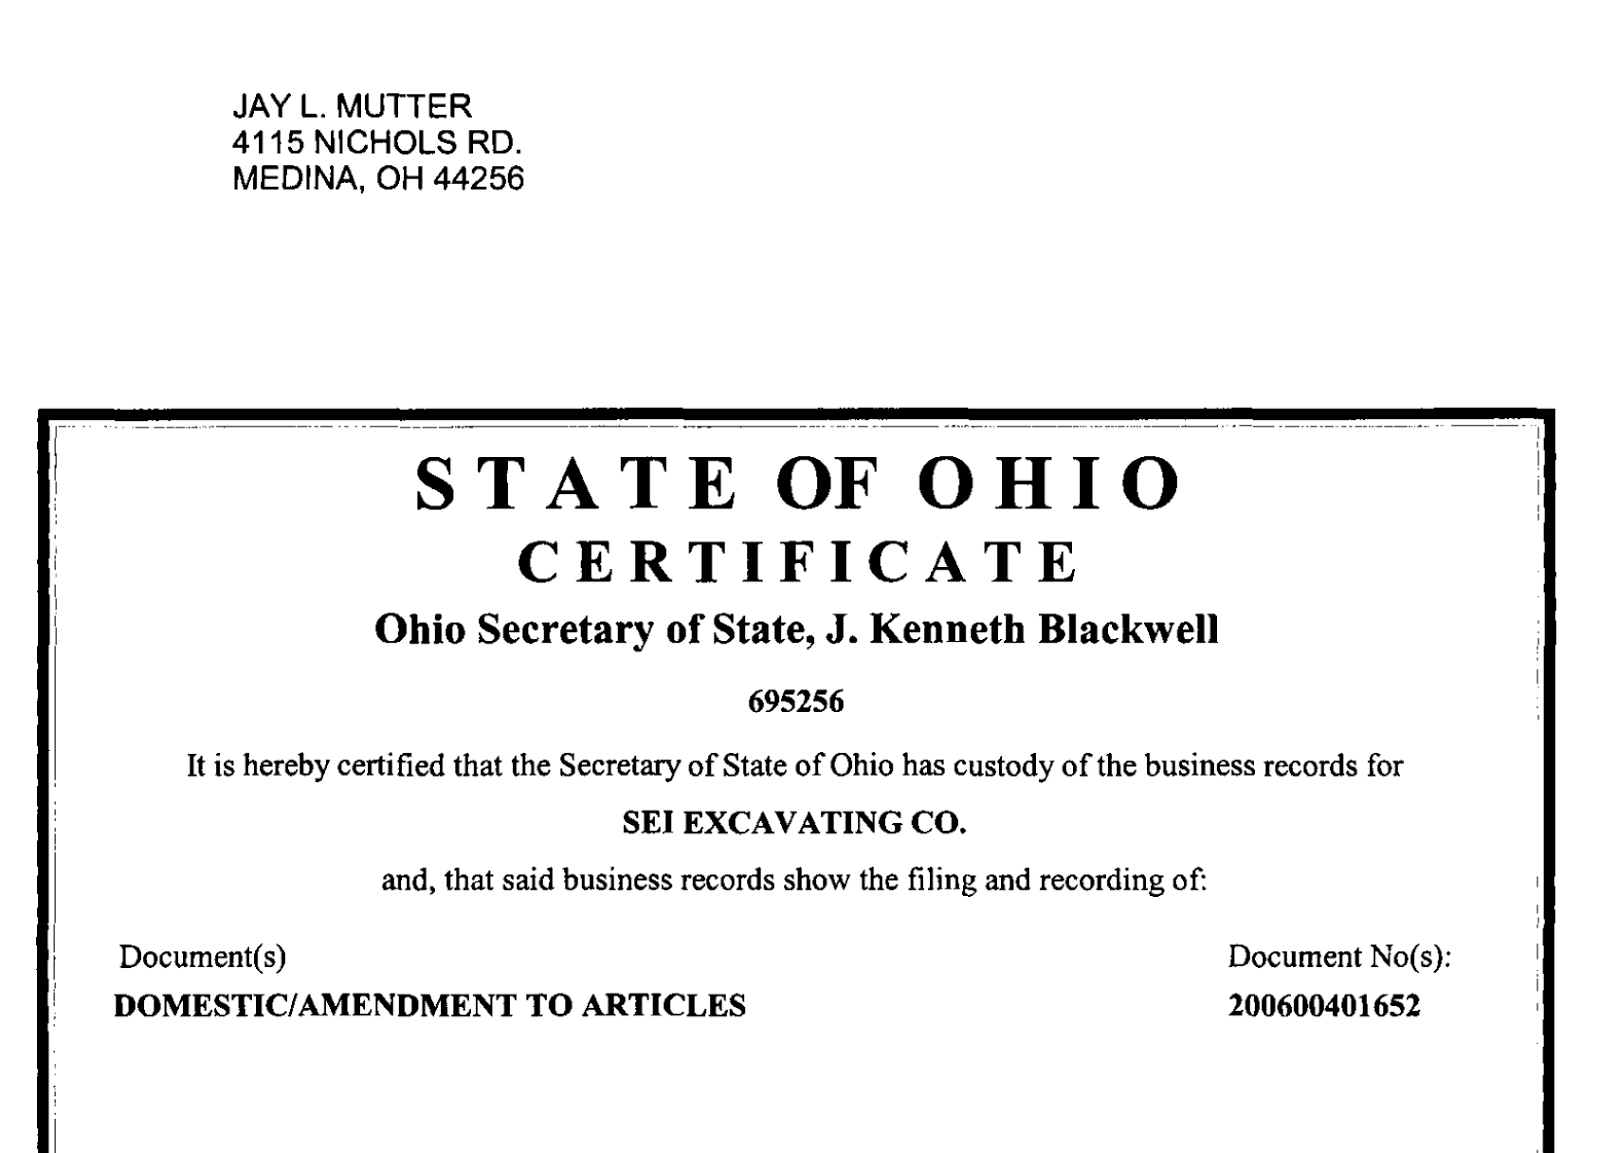 Medina corruption all the news thats fit to print but wasnt readers merit one more look at the certificate of incorporation issued to sei excavating inc on december 27 2005 by the ohio secretary of state xflitez Images